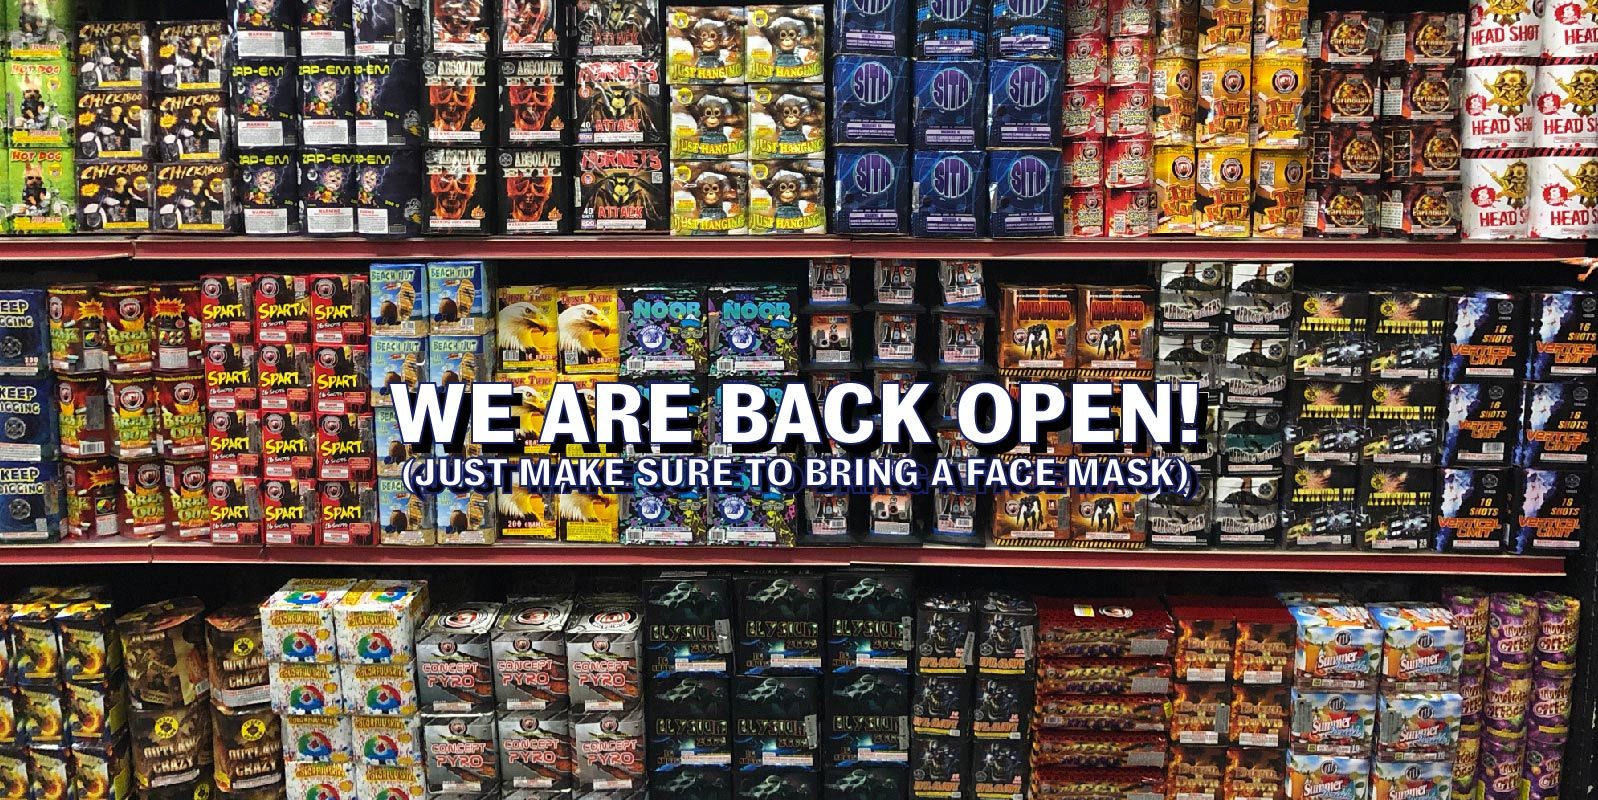 Intergalactic Fireworks at 1480 East Lincoln Highway in Langhorne, Pennsylvania 19047 is now back open after being closed due to the corona virus, covid-19. Our New Jersey location is also back open at 571 Monmouth Rd in Jackson NJ 08527